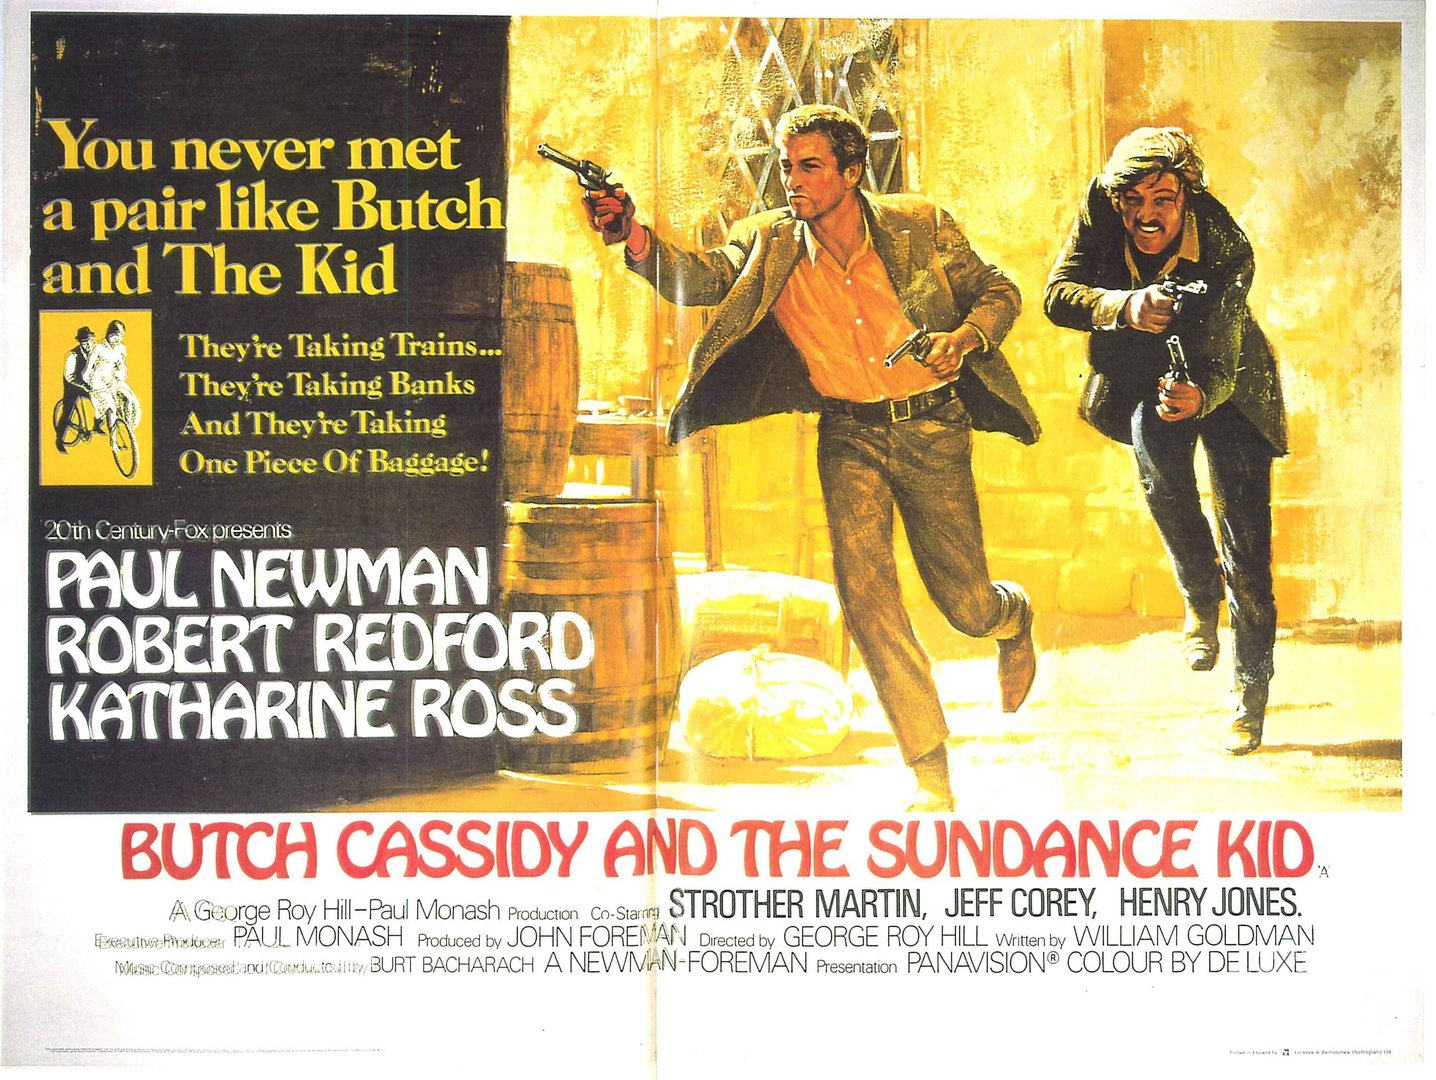 Butch Cassidy and the Sundance Kid - Vintage Paper Poster - Camden Town  Poster Company